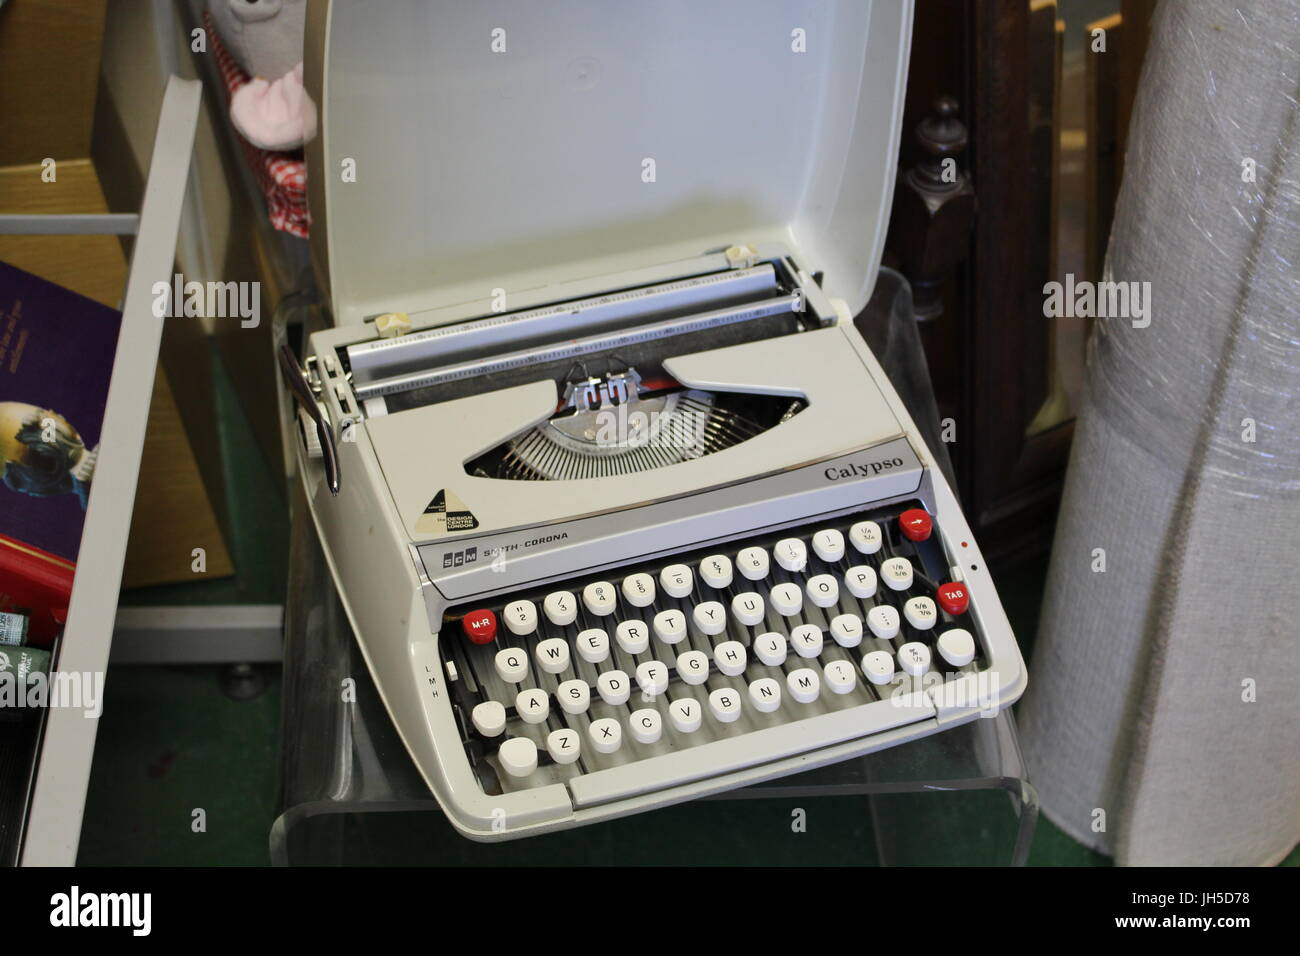 typewriter, old typewriter, author, novel, writing, antique typewriter, before laptops, authors, old authors, kitsch, - Stock Image